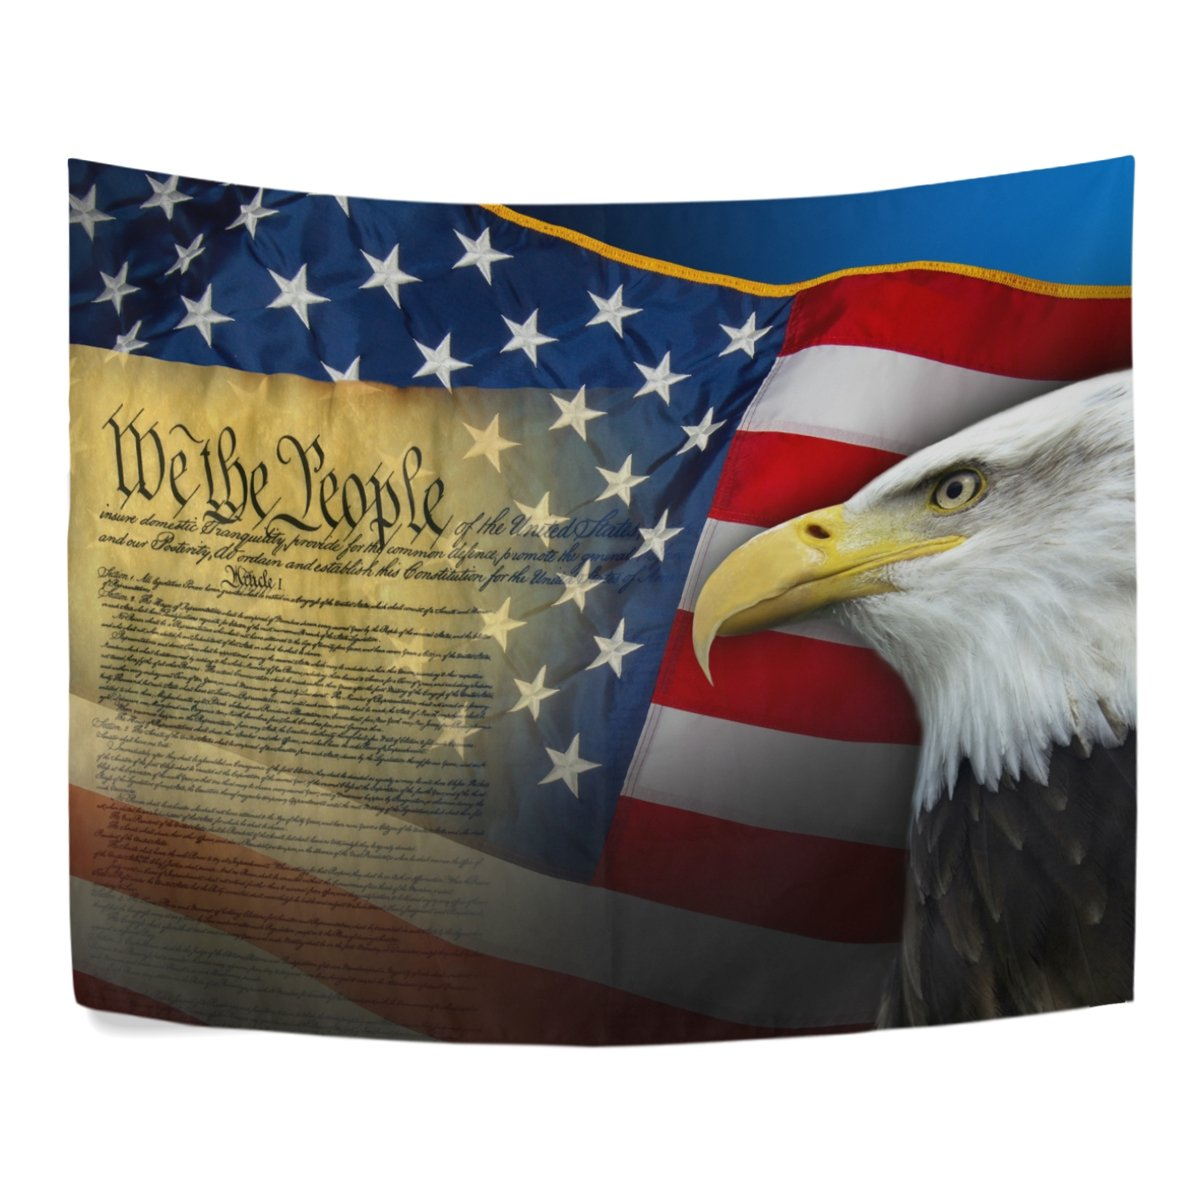 Patriotic United States of America and Eagle Polyester House Decor Wall Hangings Tapestry Wall Carpet 60x40 Inch Apartment Decor